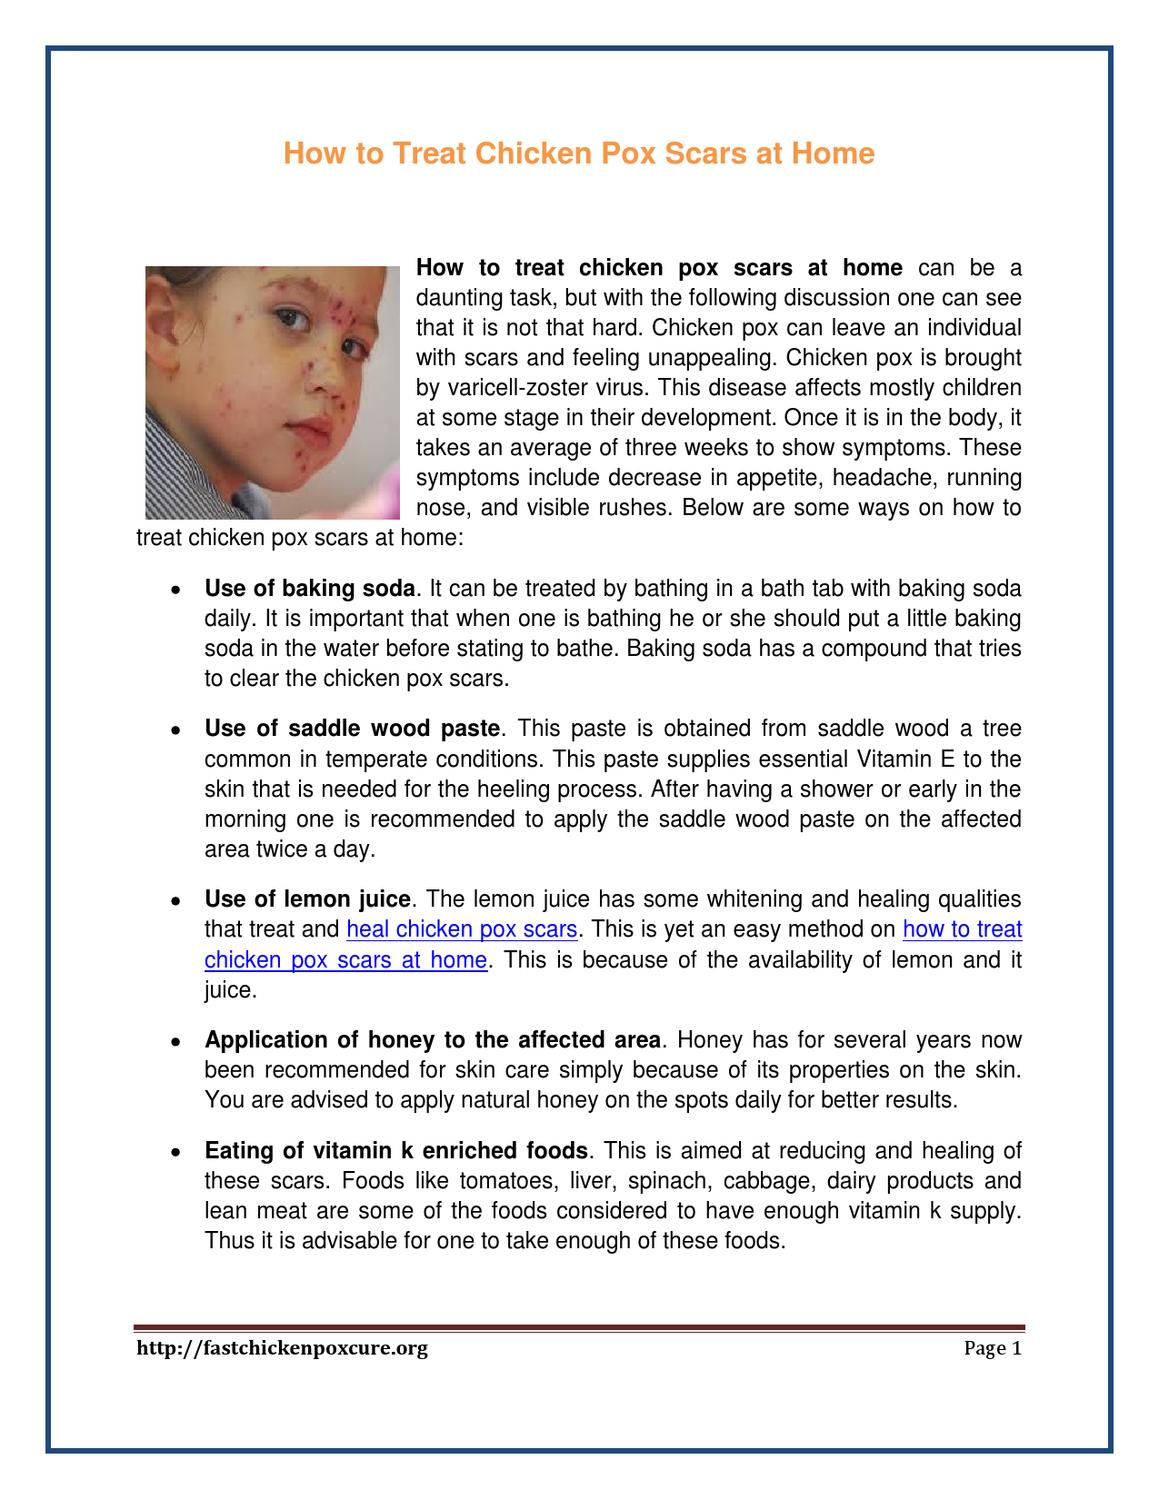 How To Treat Chicken Pox Scars At Home By Lucia Kimberly Issuu